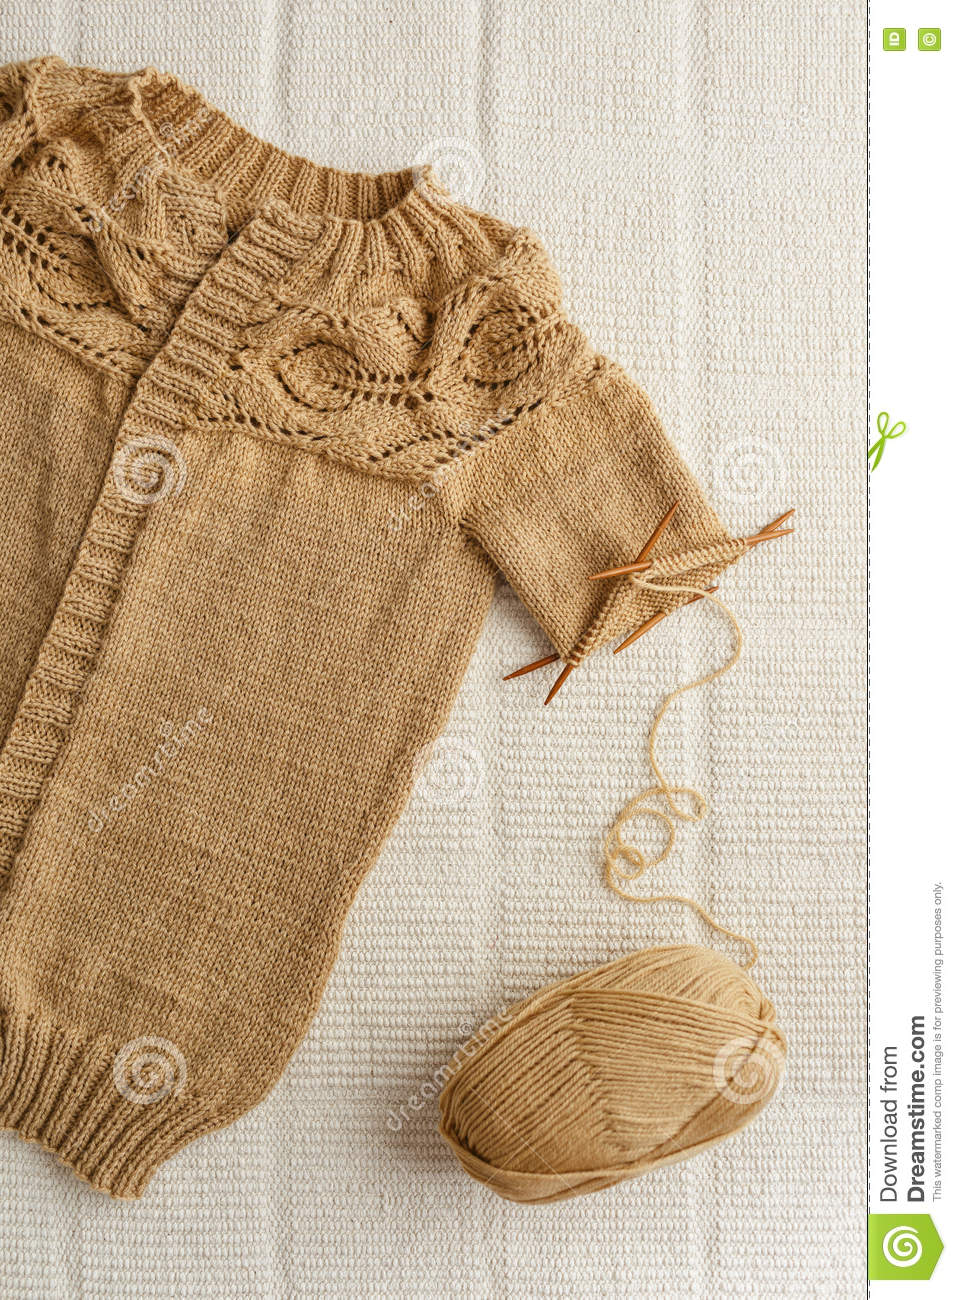 Knitting Patterns Wool And Needles : Knitting Stock Photo - Image: 73670735